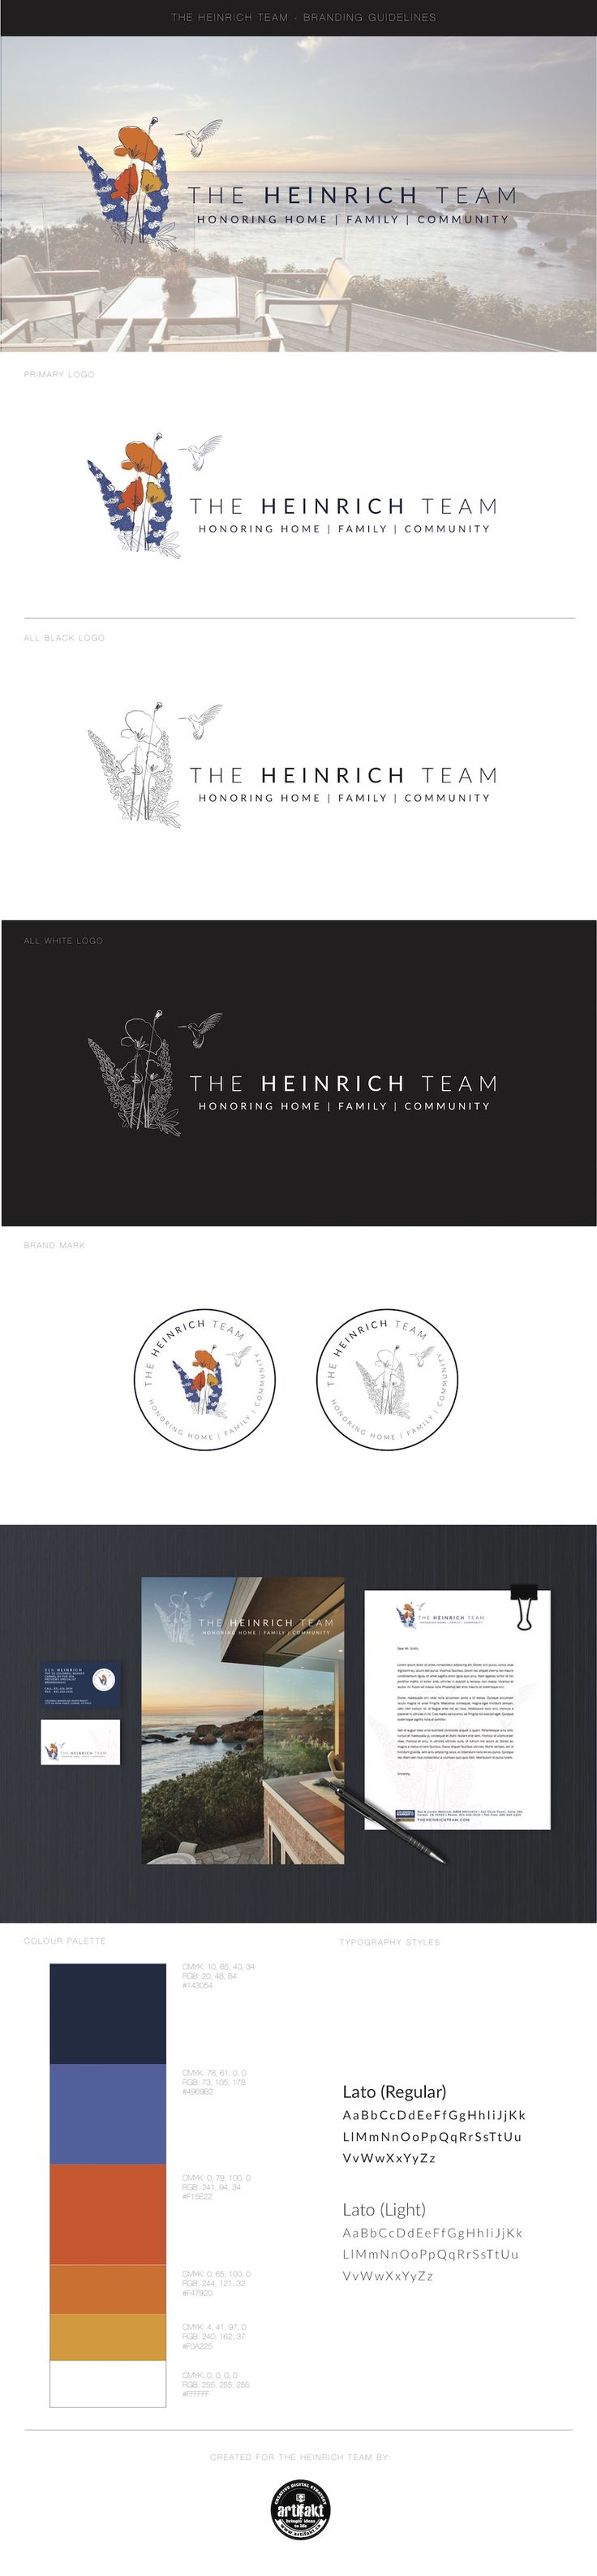 The completed branding guidelines we did for The Heinrich Team; a real estate team in California.